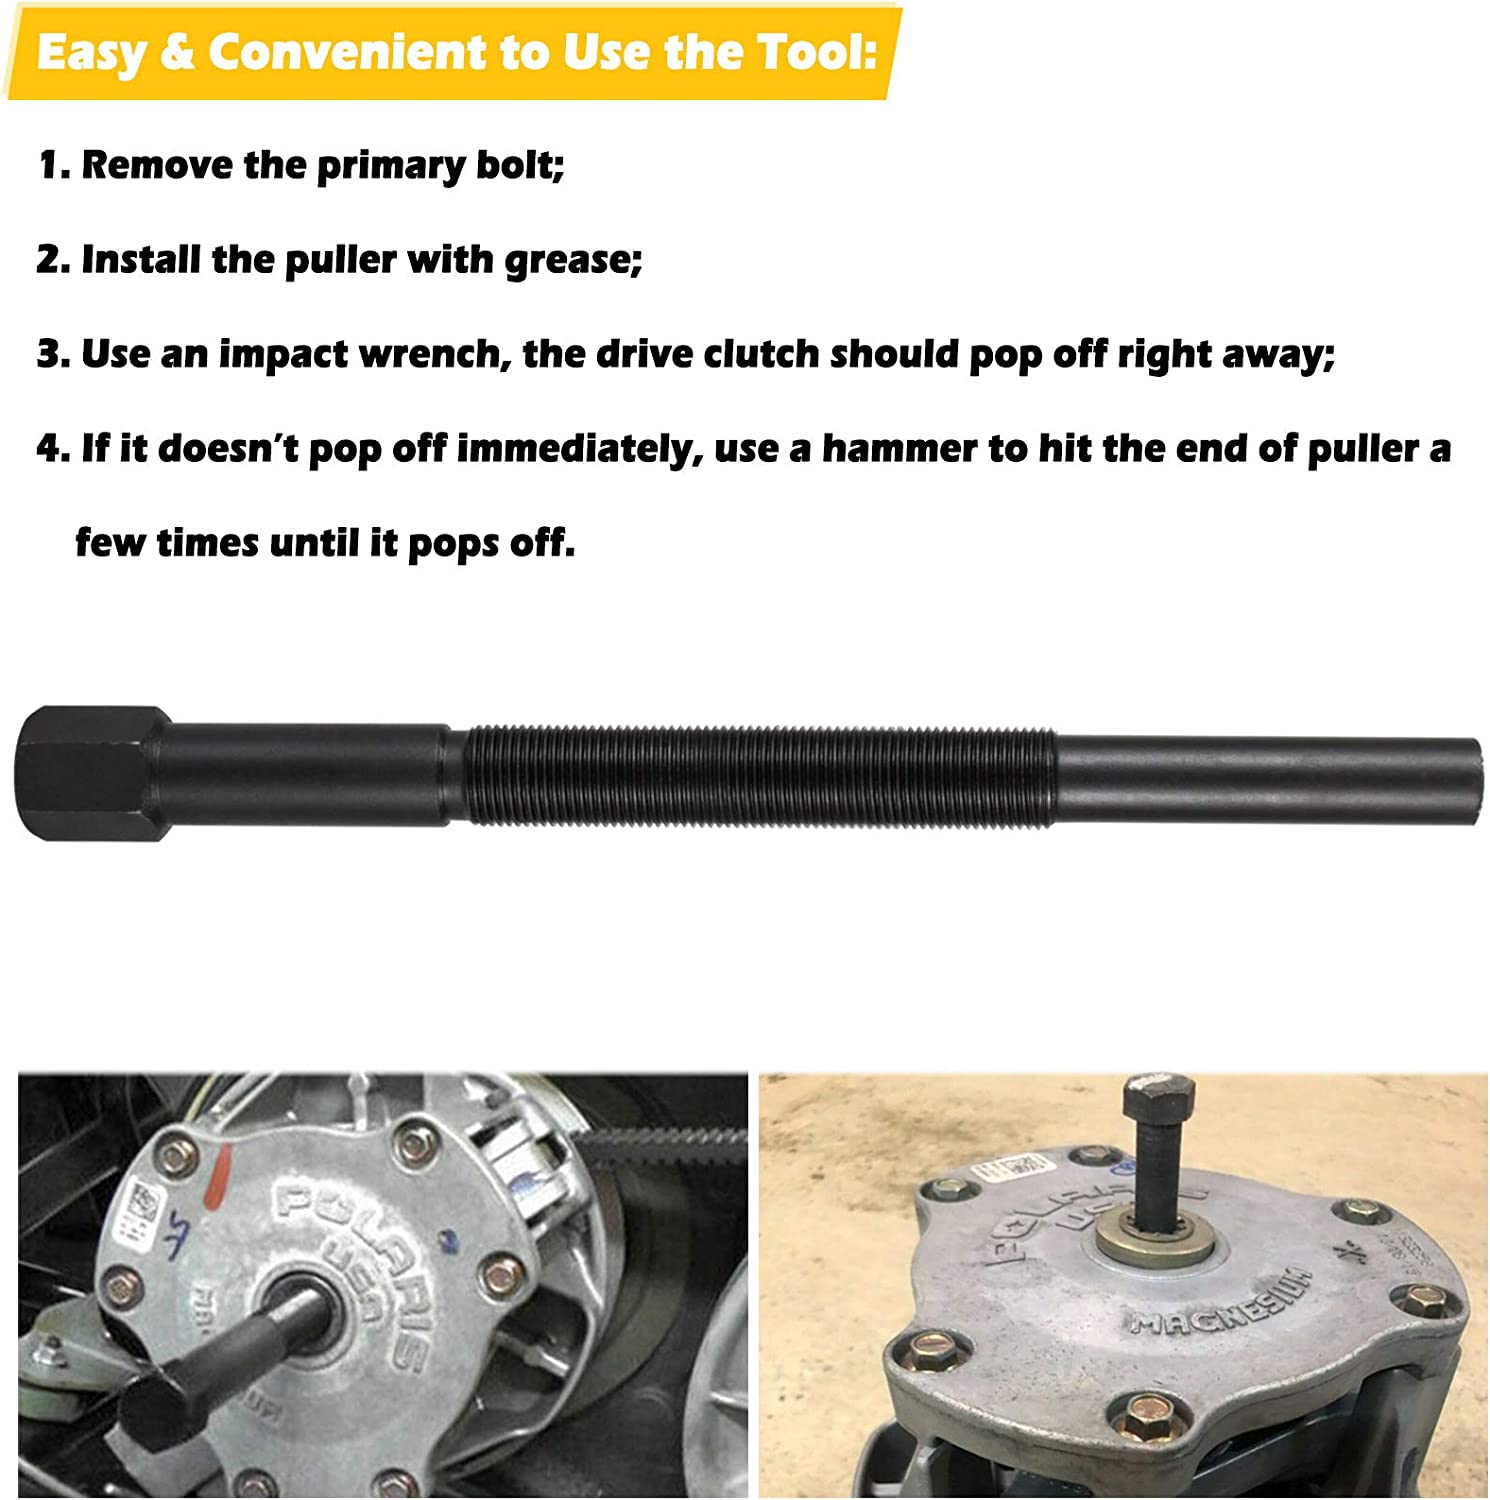 Similar to OEM #2870506 PP3078 15-878 30260 Primary Drive Clutch Puller Remover Tool Fits for Polaris All Models Including Ranger//RZR//Sportsman//General//Scrambler 1985-2016